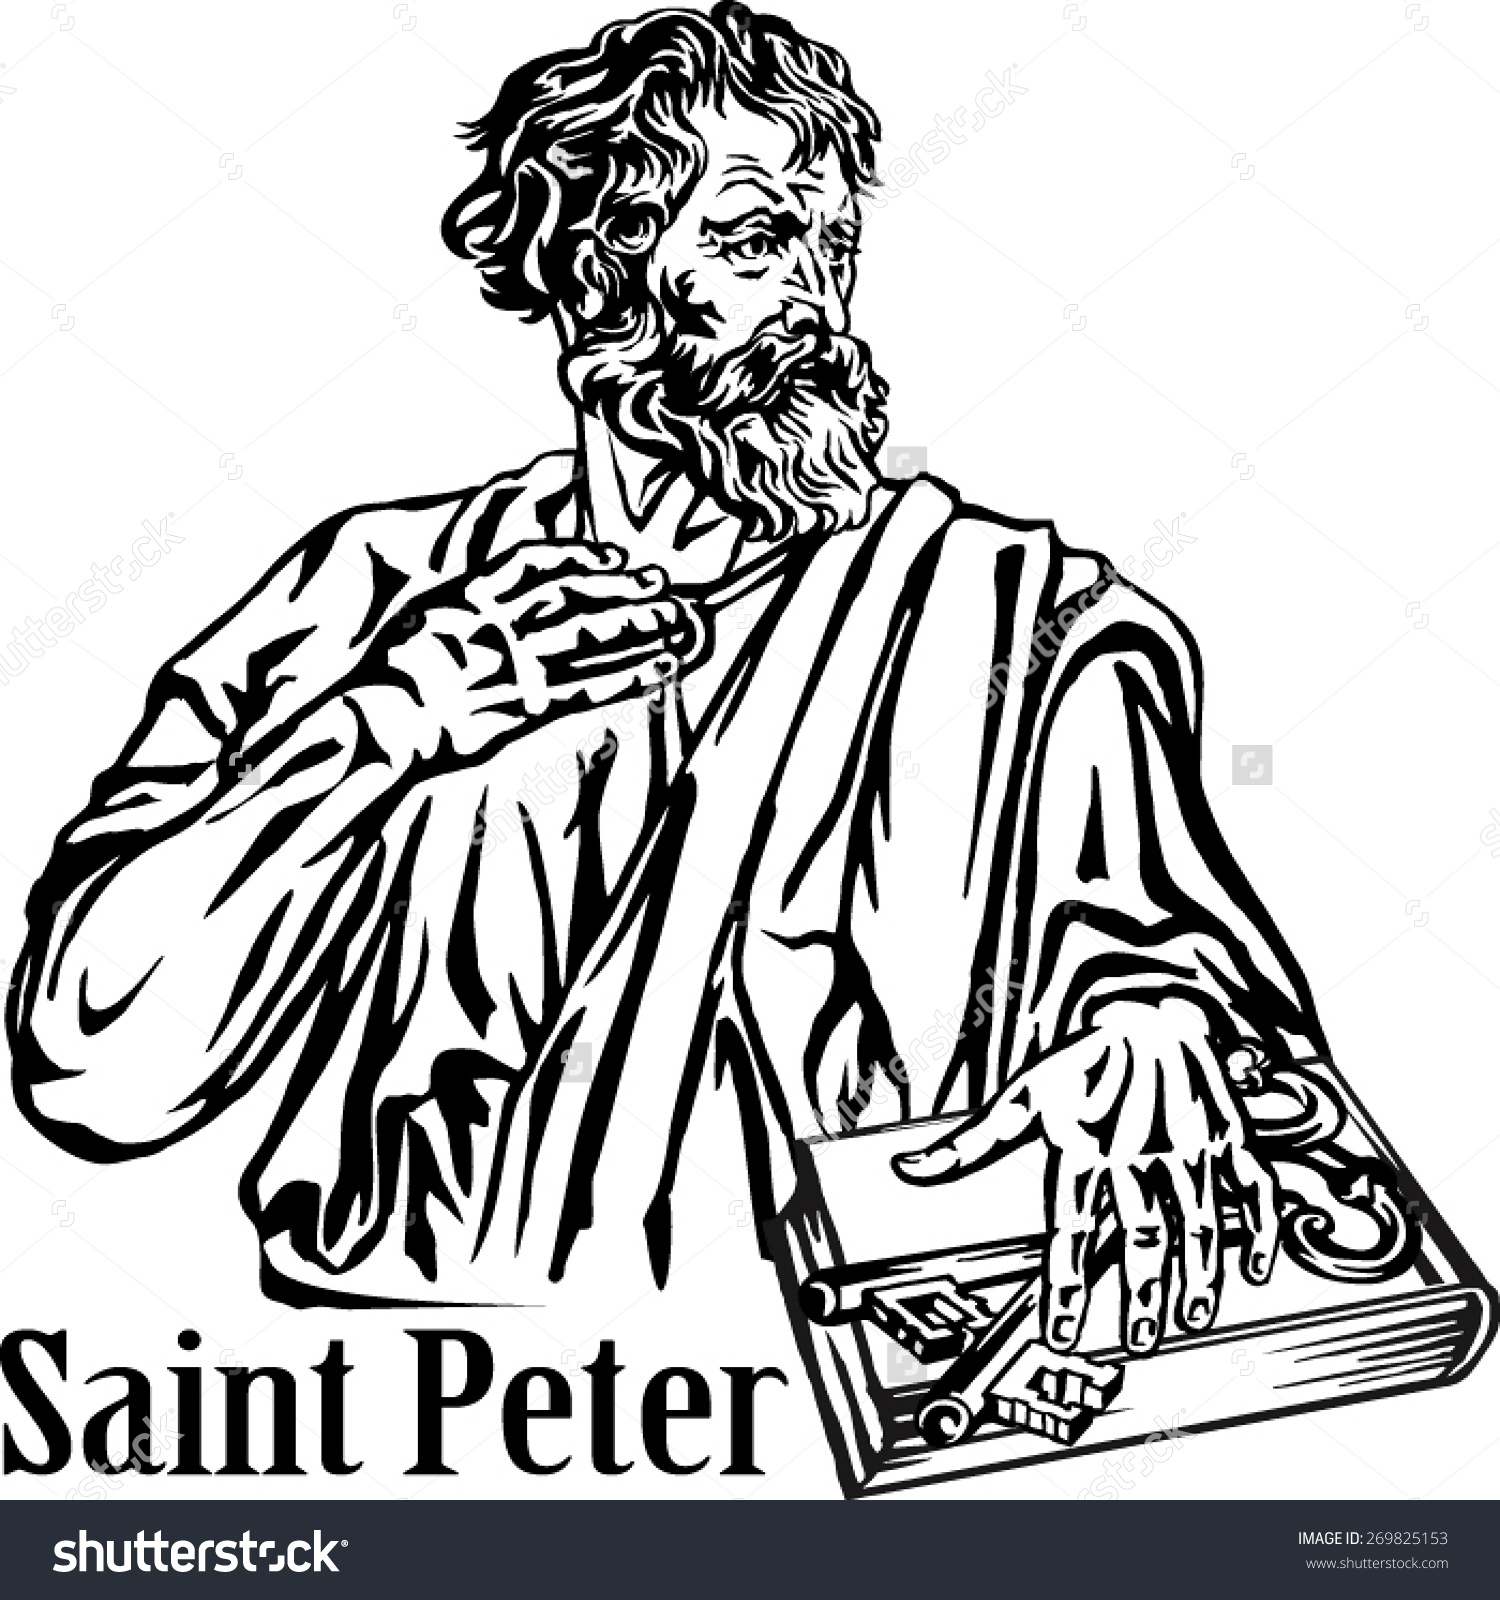 St peter clipart.